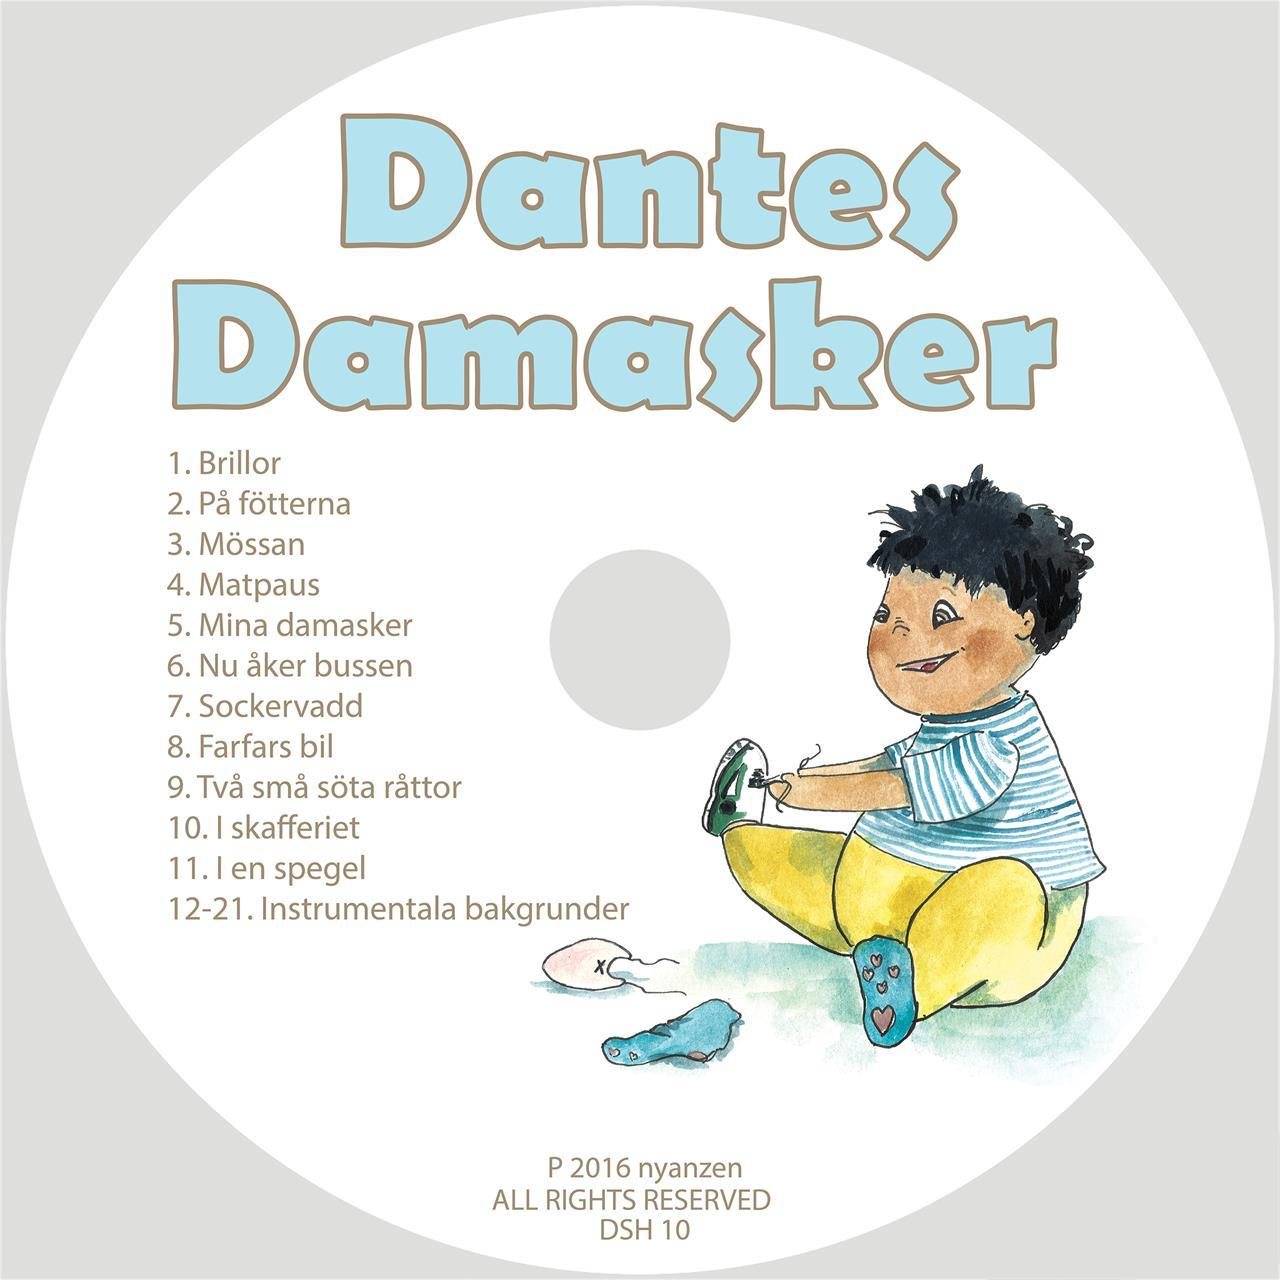 Dantes Damasker - Cd/Digital musik